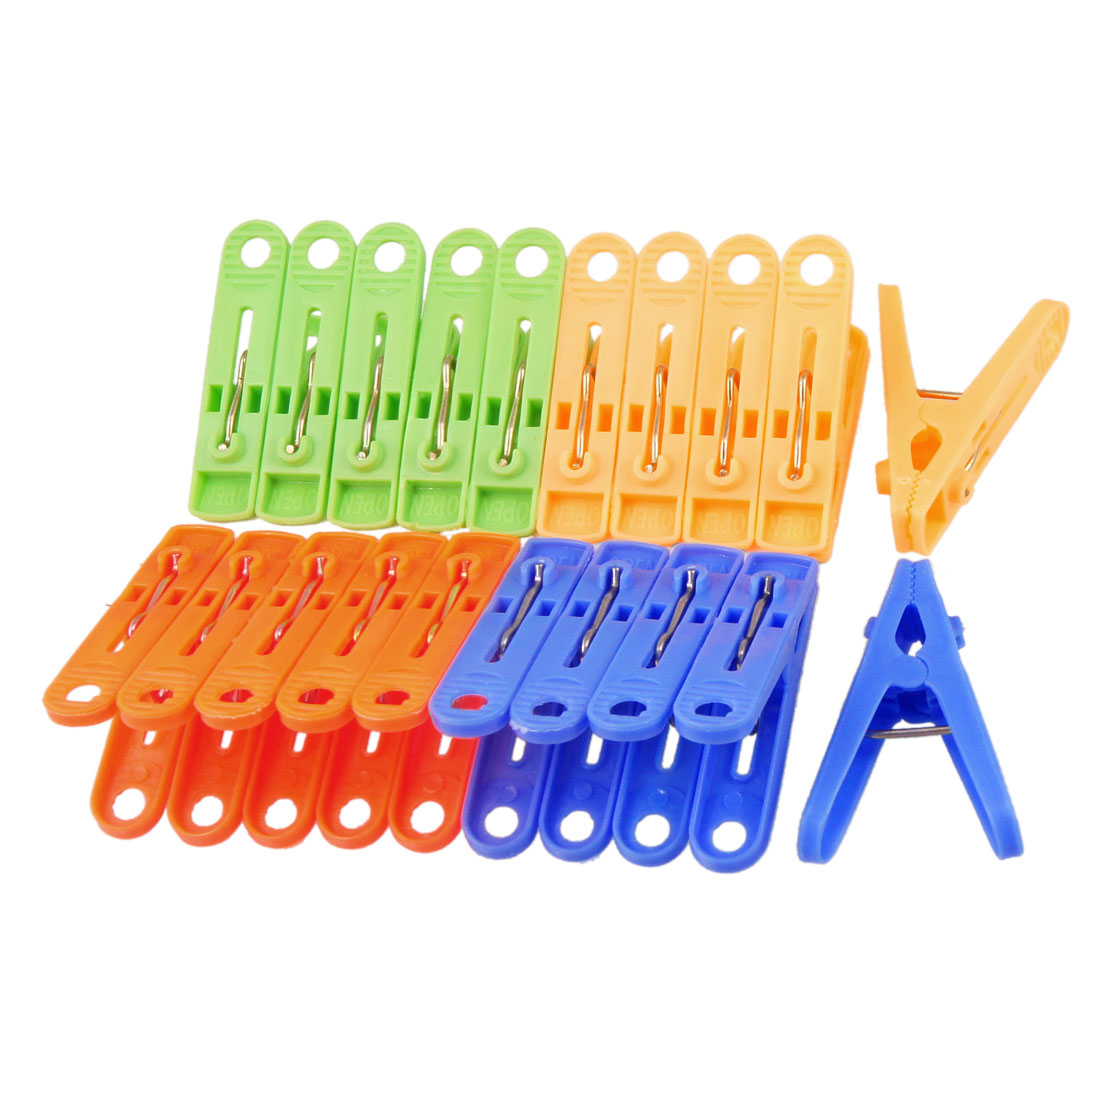 20 Pcs Assorted Colors Nonslip Grips Clothespins Clothes Clips Pegs